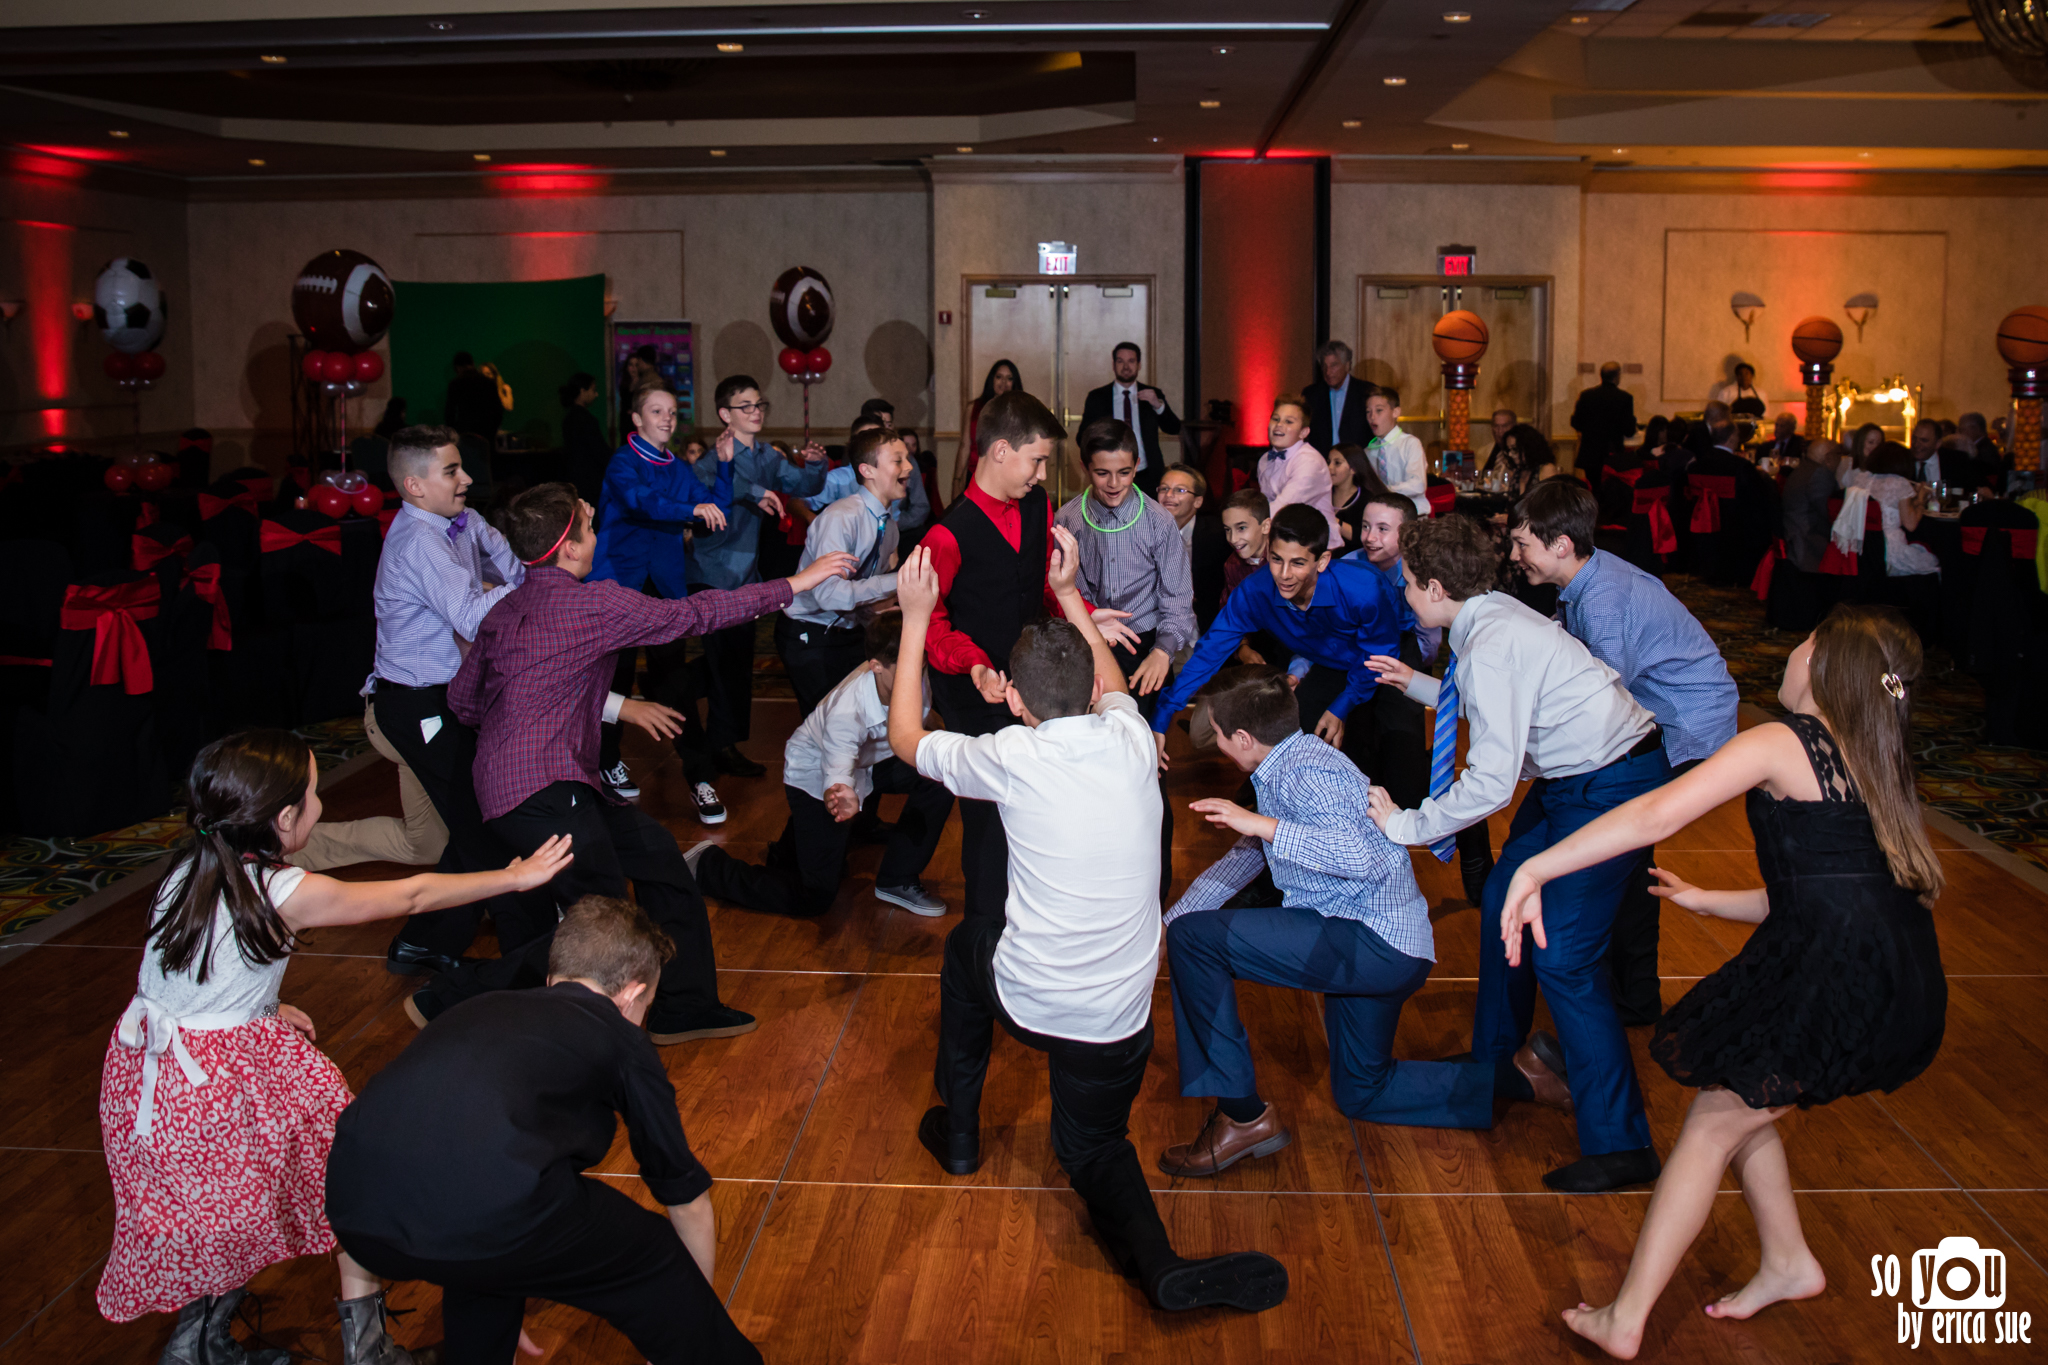 bar-mitzvah-photographer-parkland-fl-marriott-6906.jpg